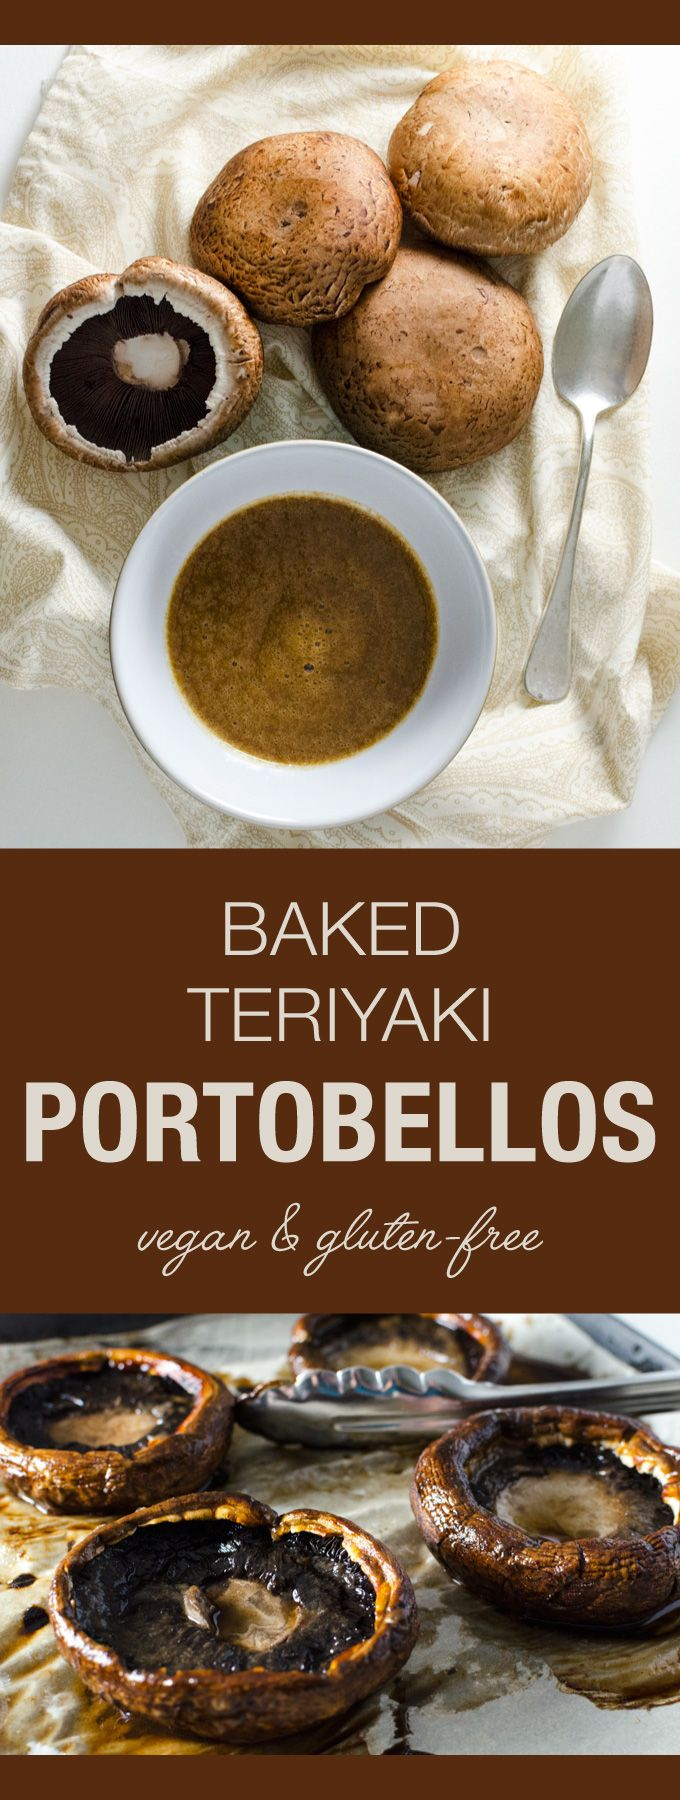 Baked Teriyaki Portobello Mushrooms - a quick and easy addition to a number of different vegan and gluten-free recipes! | VeggiePrimer.com